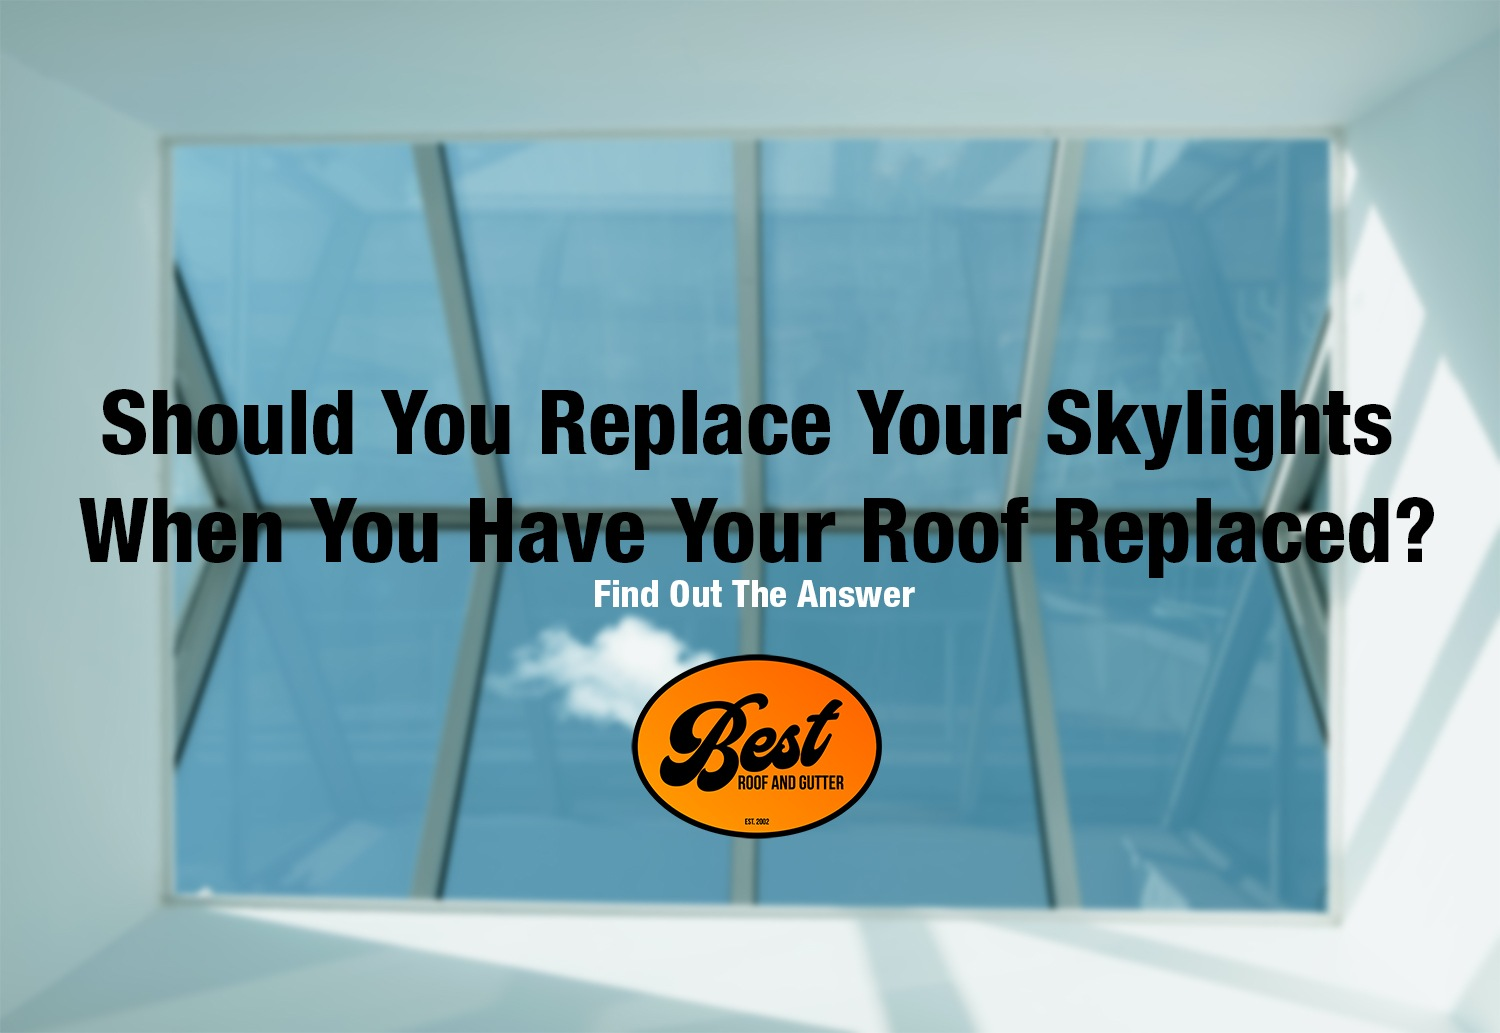 Should You Replace Your Skylights When You Have Your Roof Replaced?